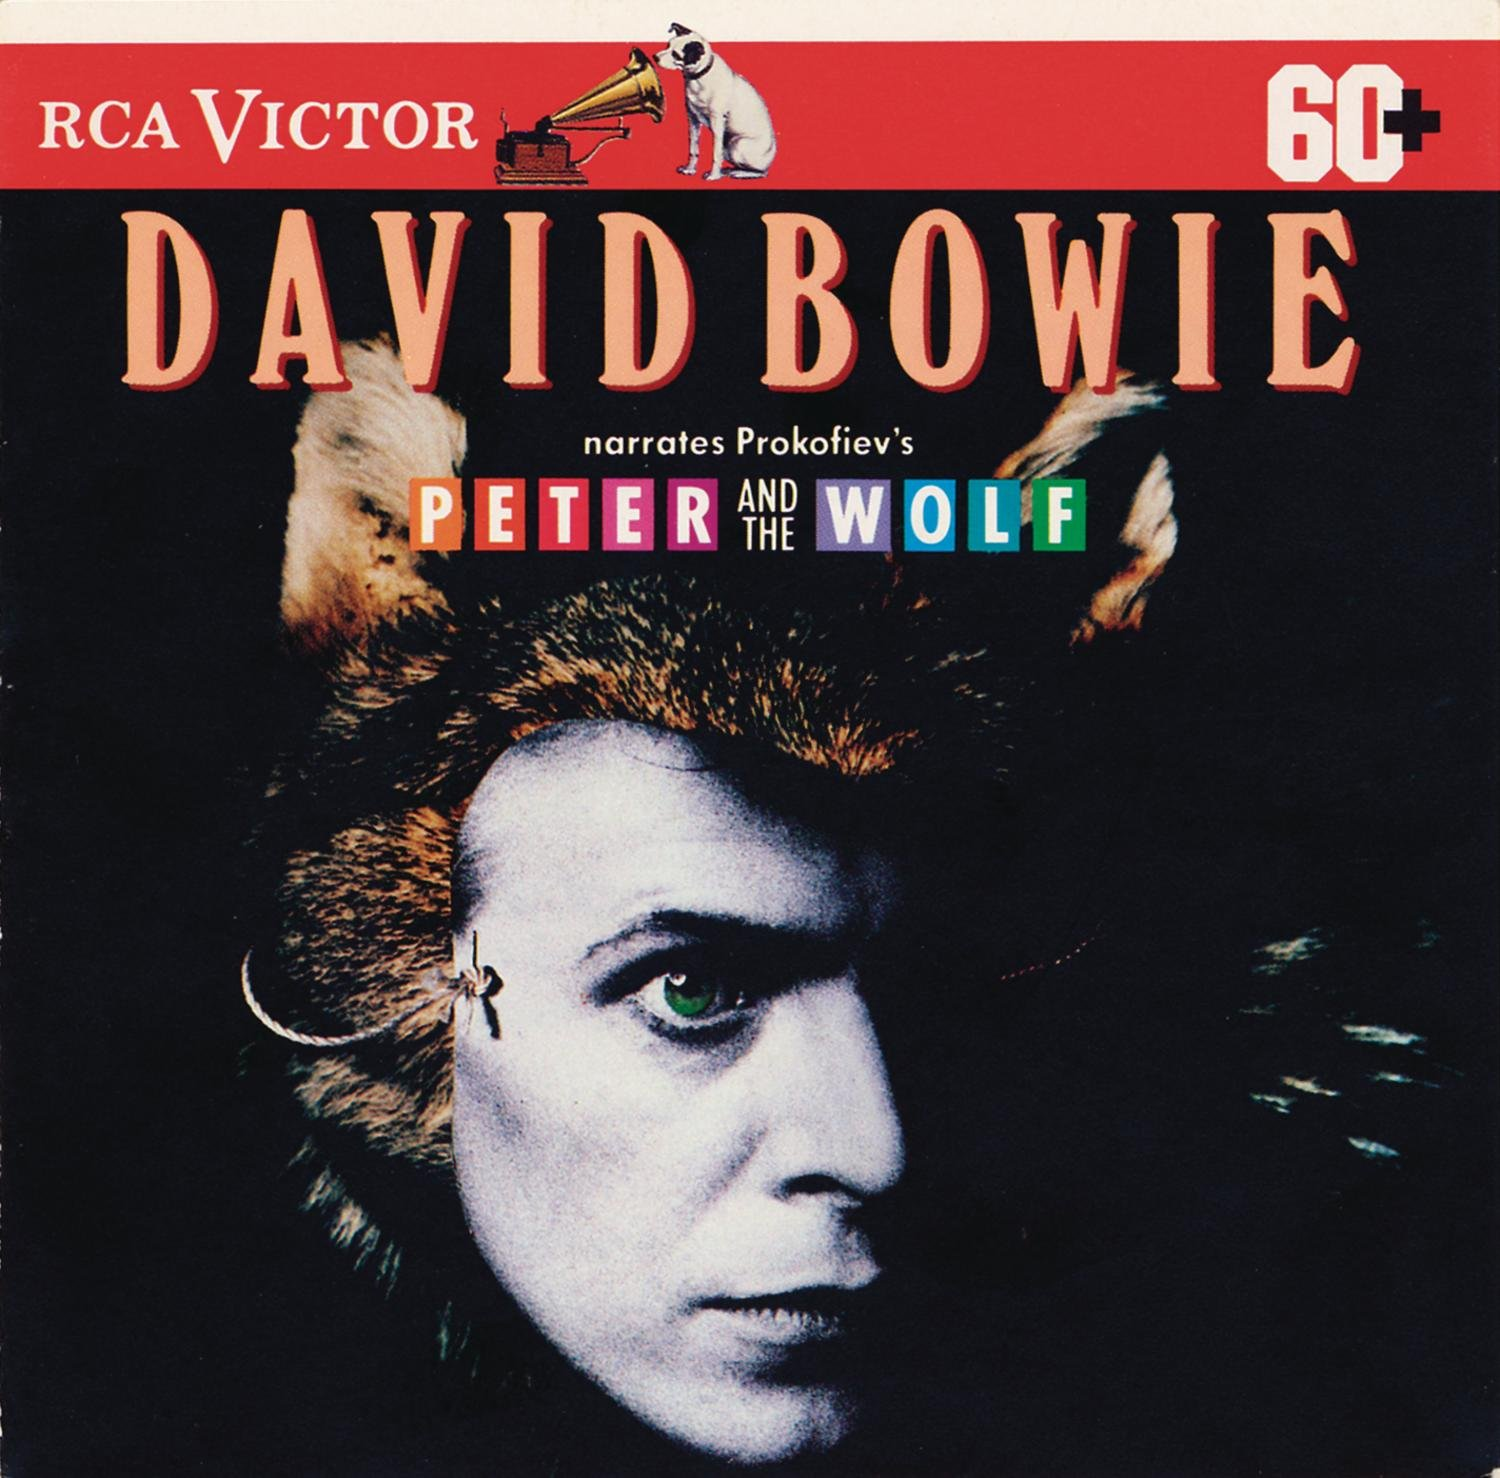 David Bowie Narrates Prokofiev's ''Peter and the Wolf''